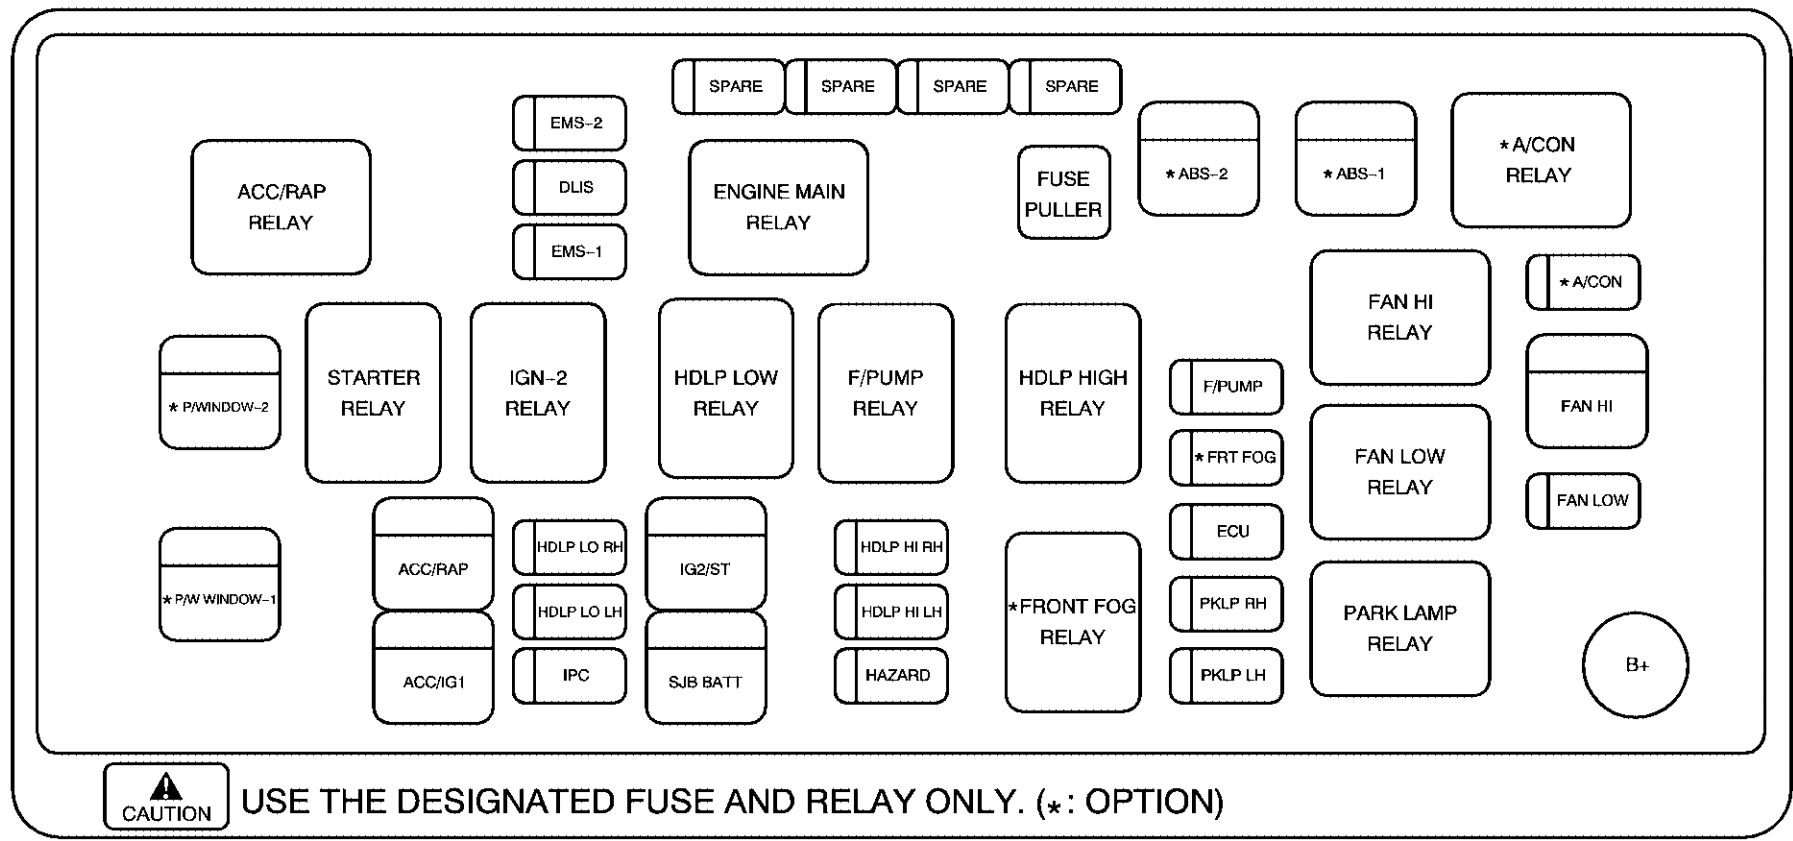 small resolution of 2004 chevy aveo fuse diagram wiring diagram used 2004 chevy aveo starter wiring diagram 2004 chevy aveo fuse diagram